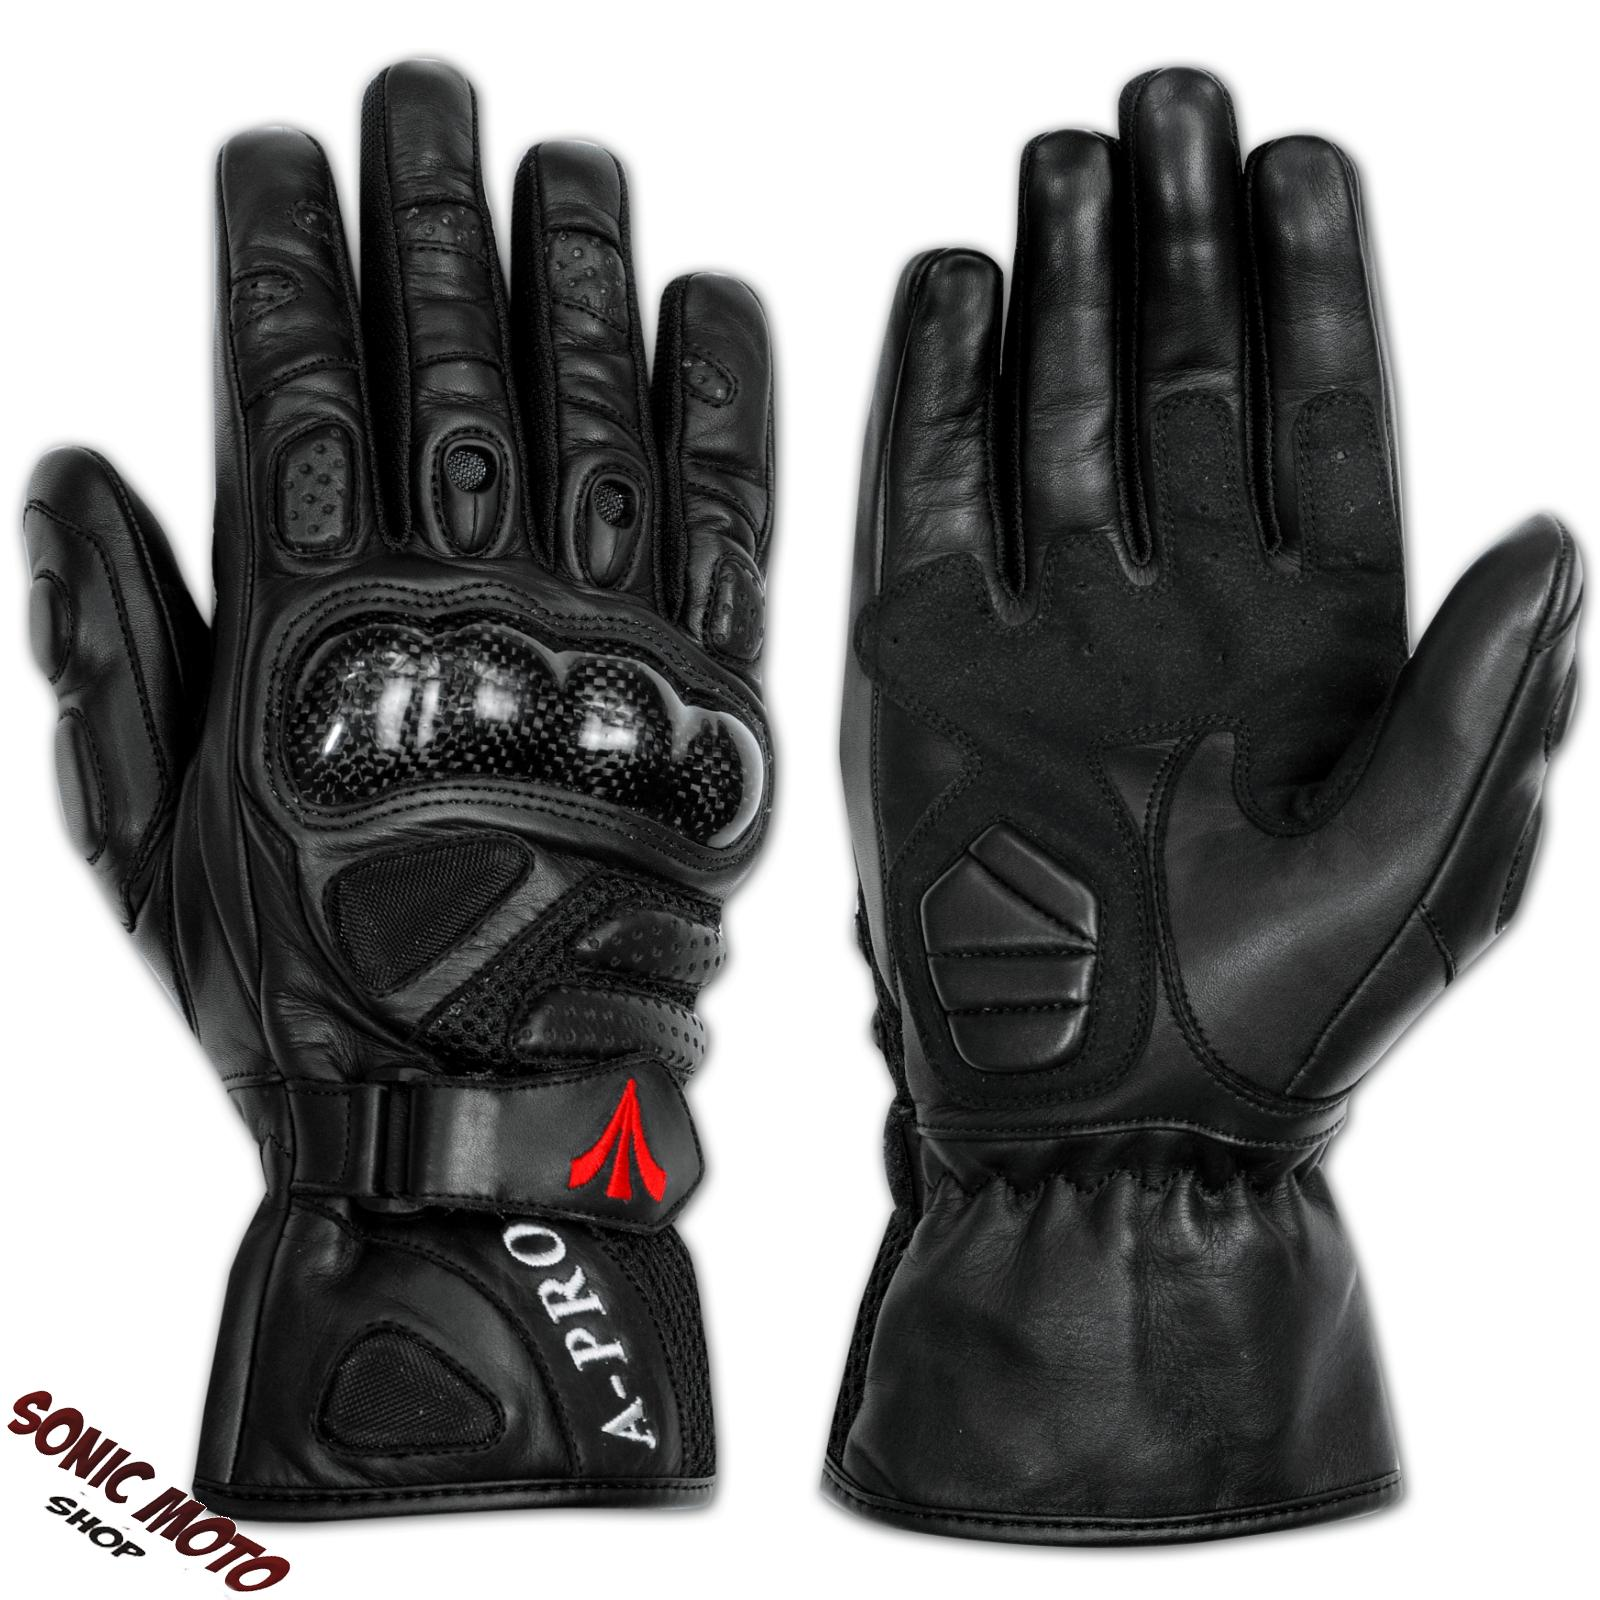 gants motard moto scooter napa cuir coque protections fibre route piste a pro. Black Bedroom Furniture Sets. Home Design Ideas